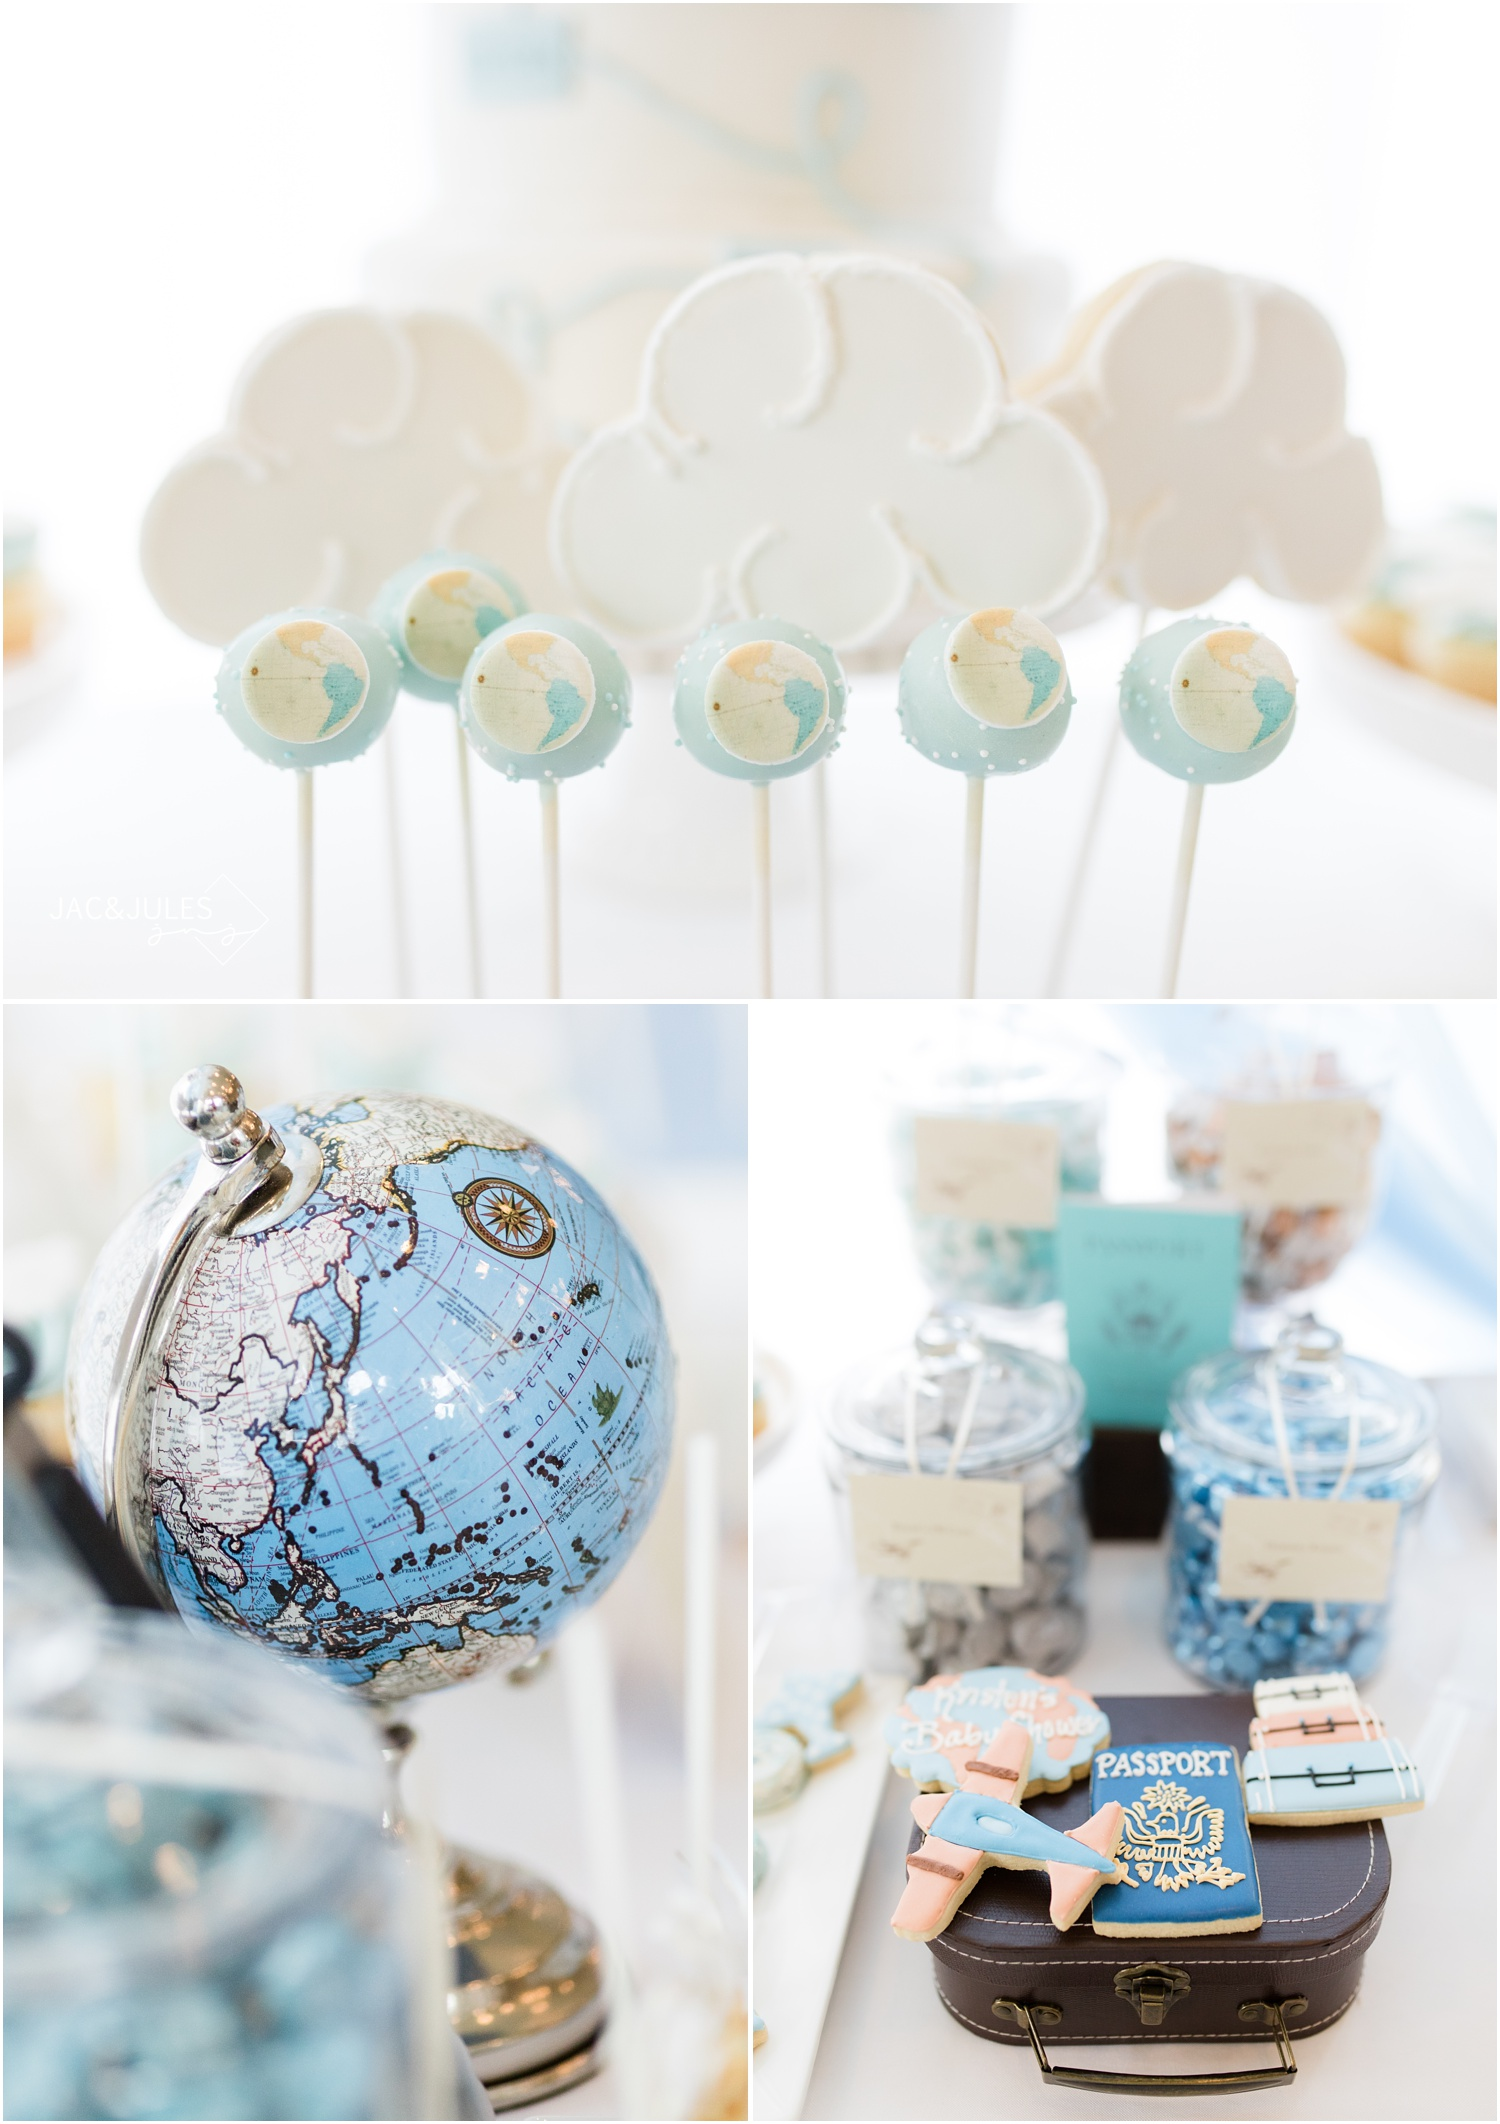 globe cake pops and cloud cookie pops for travel theme baby shower at Forsgate Country Club.